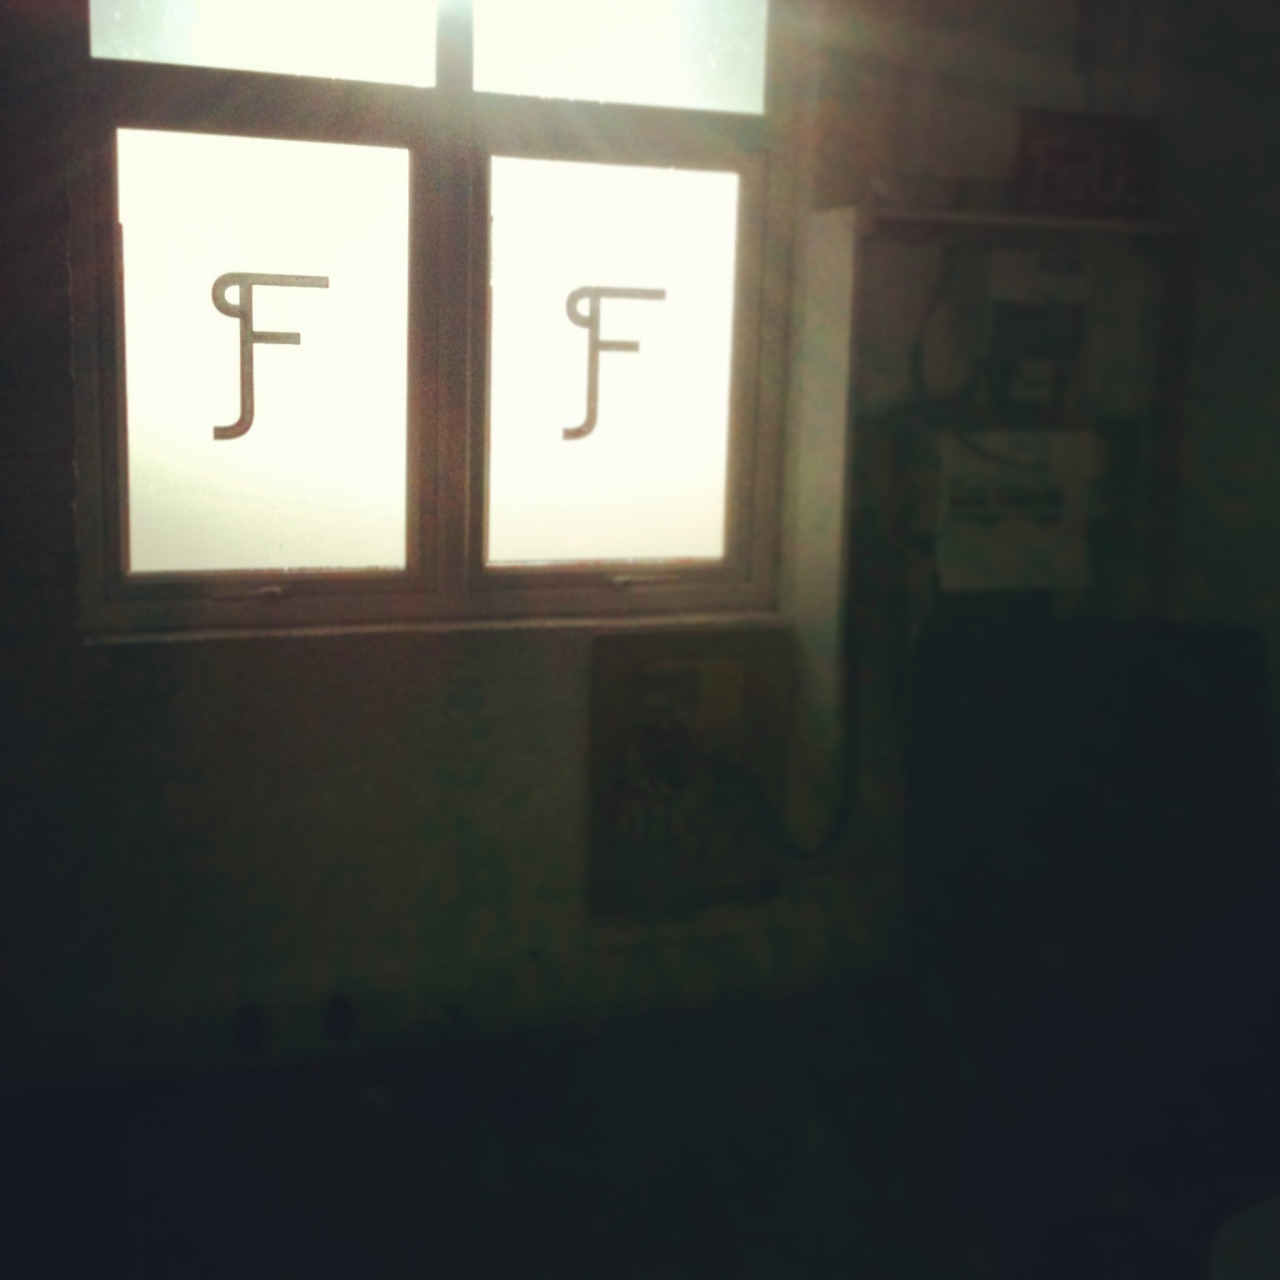 We like it when the sun shines- we can actually see the Folk 'f' on our windows